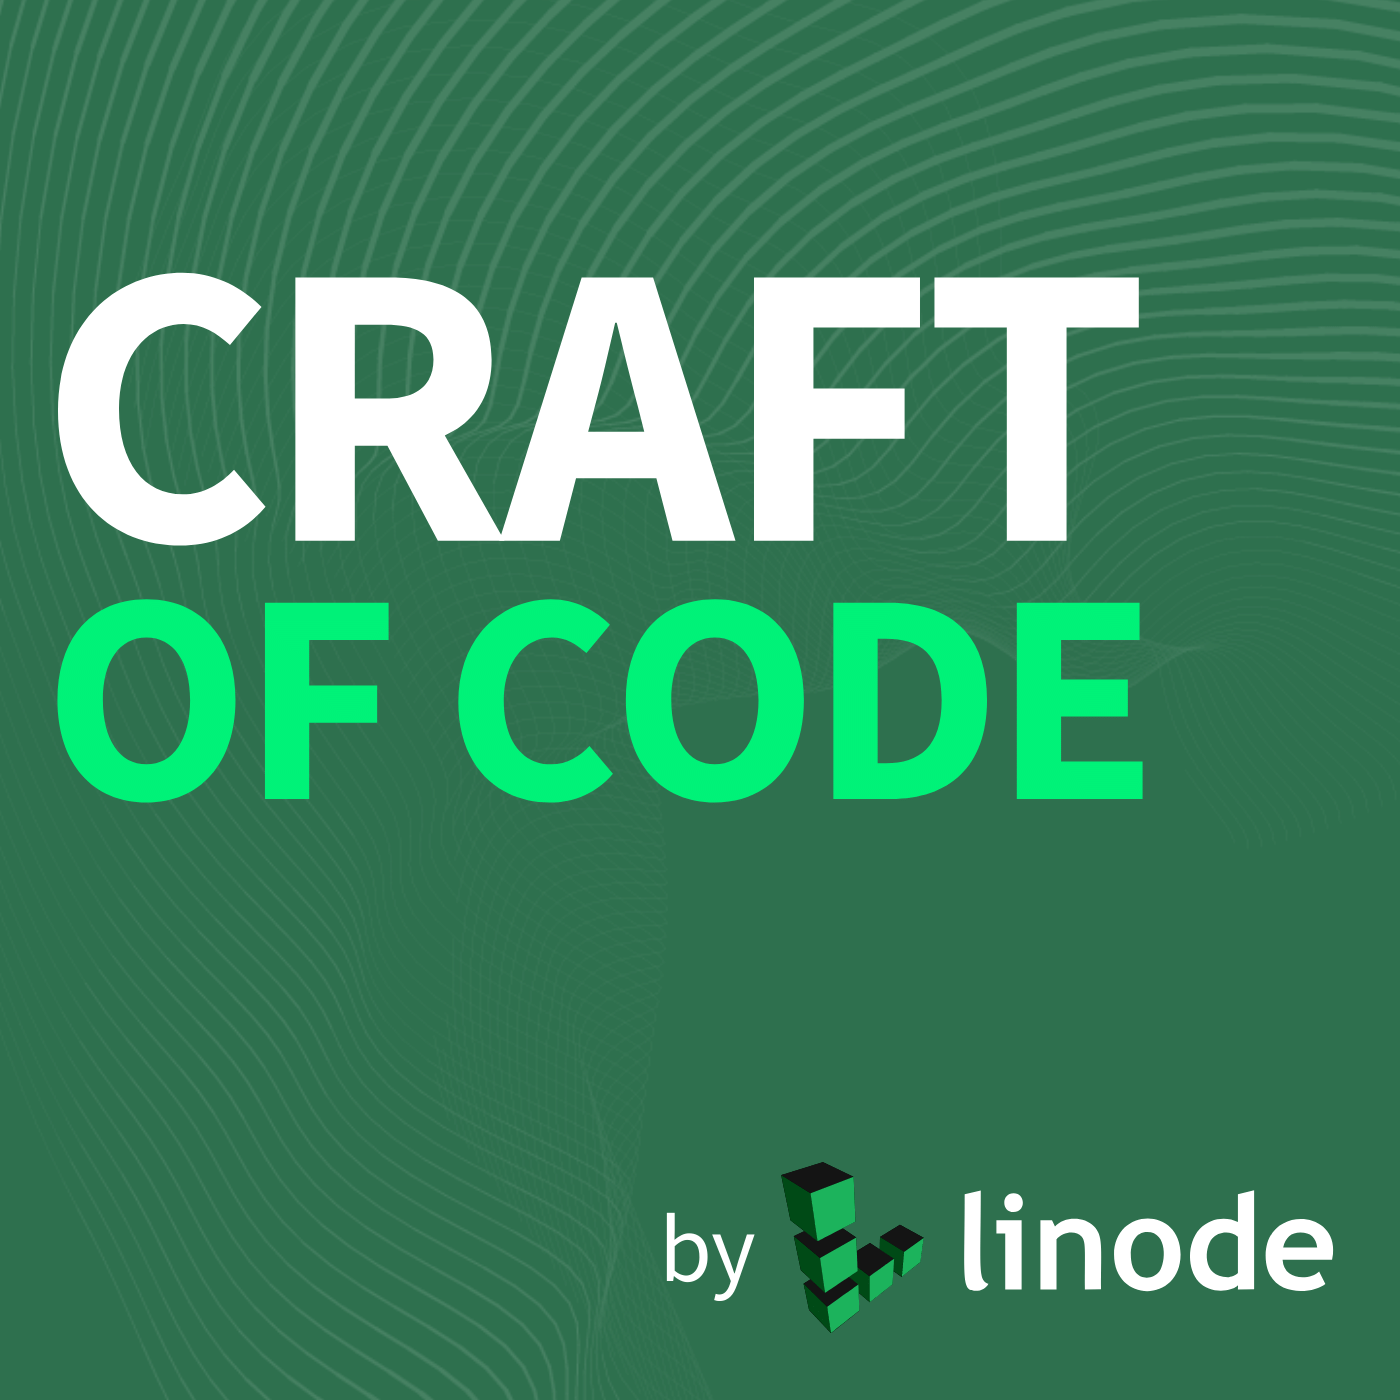 Artwork for podcast Craft of Code